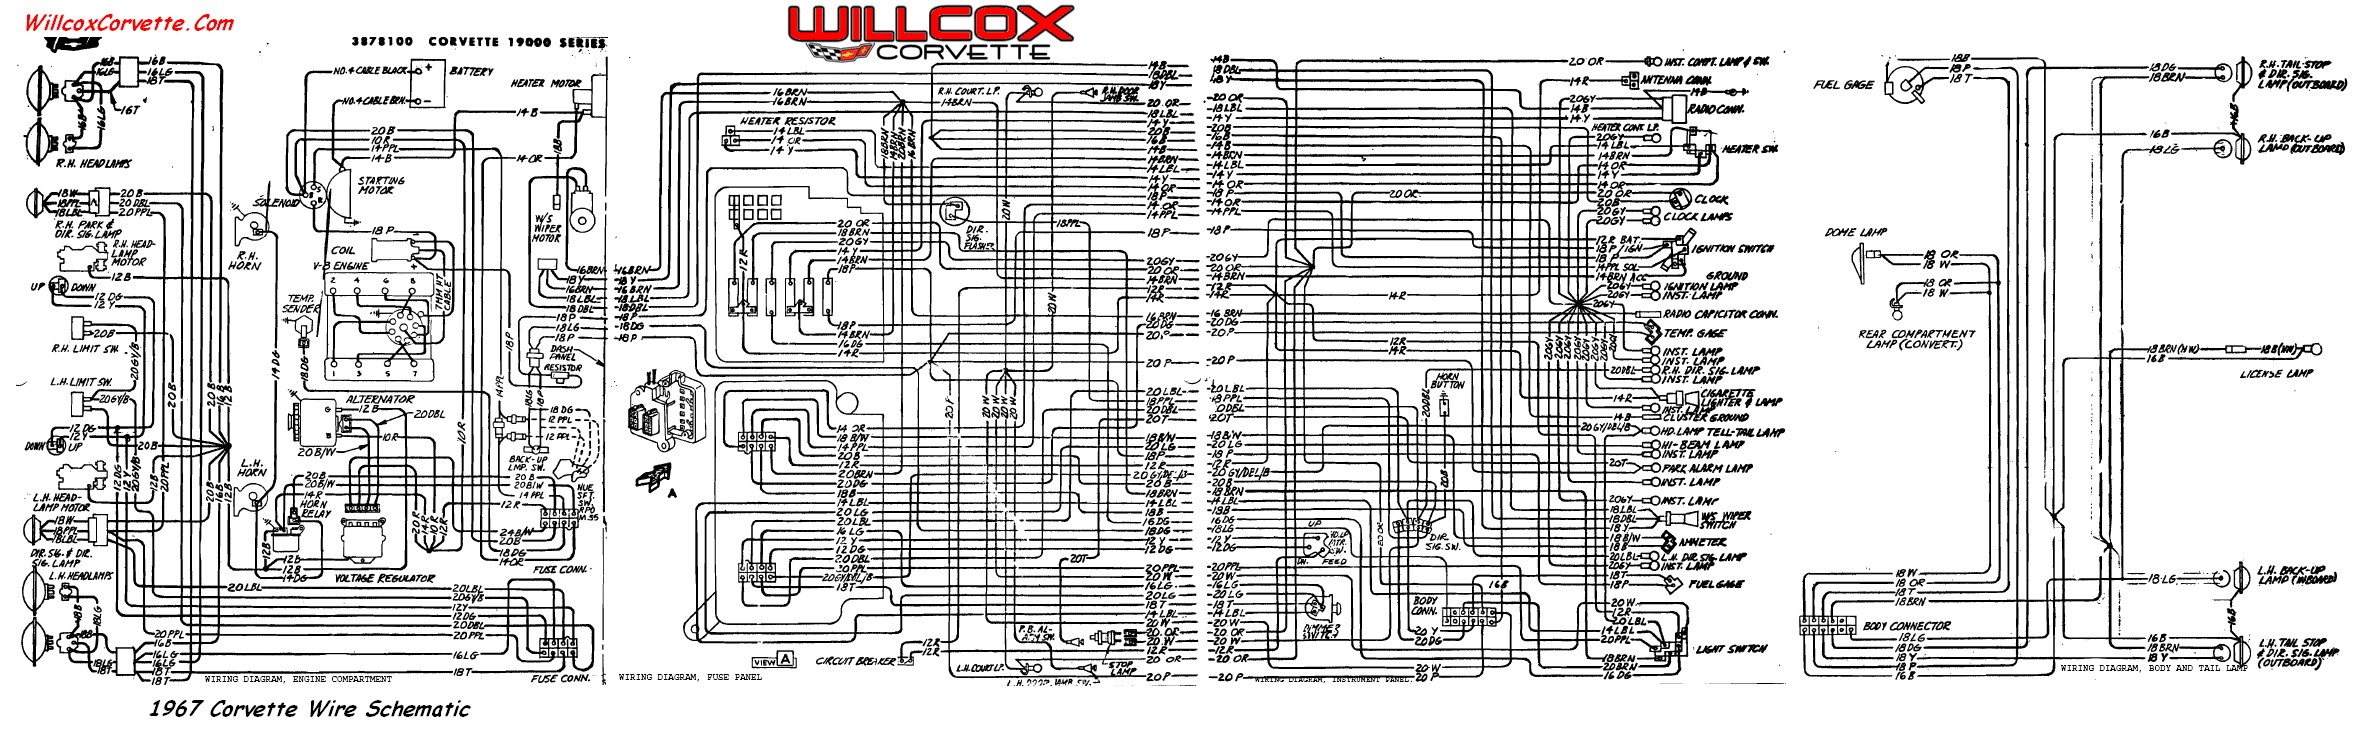 1975 Corvette Fuse Block Diagram Wiring Electricity Gmc Jimmy Box Example Electrical Circuit U2022 Rh Electricdiagram Today Gm 1999